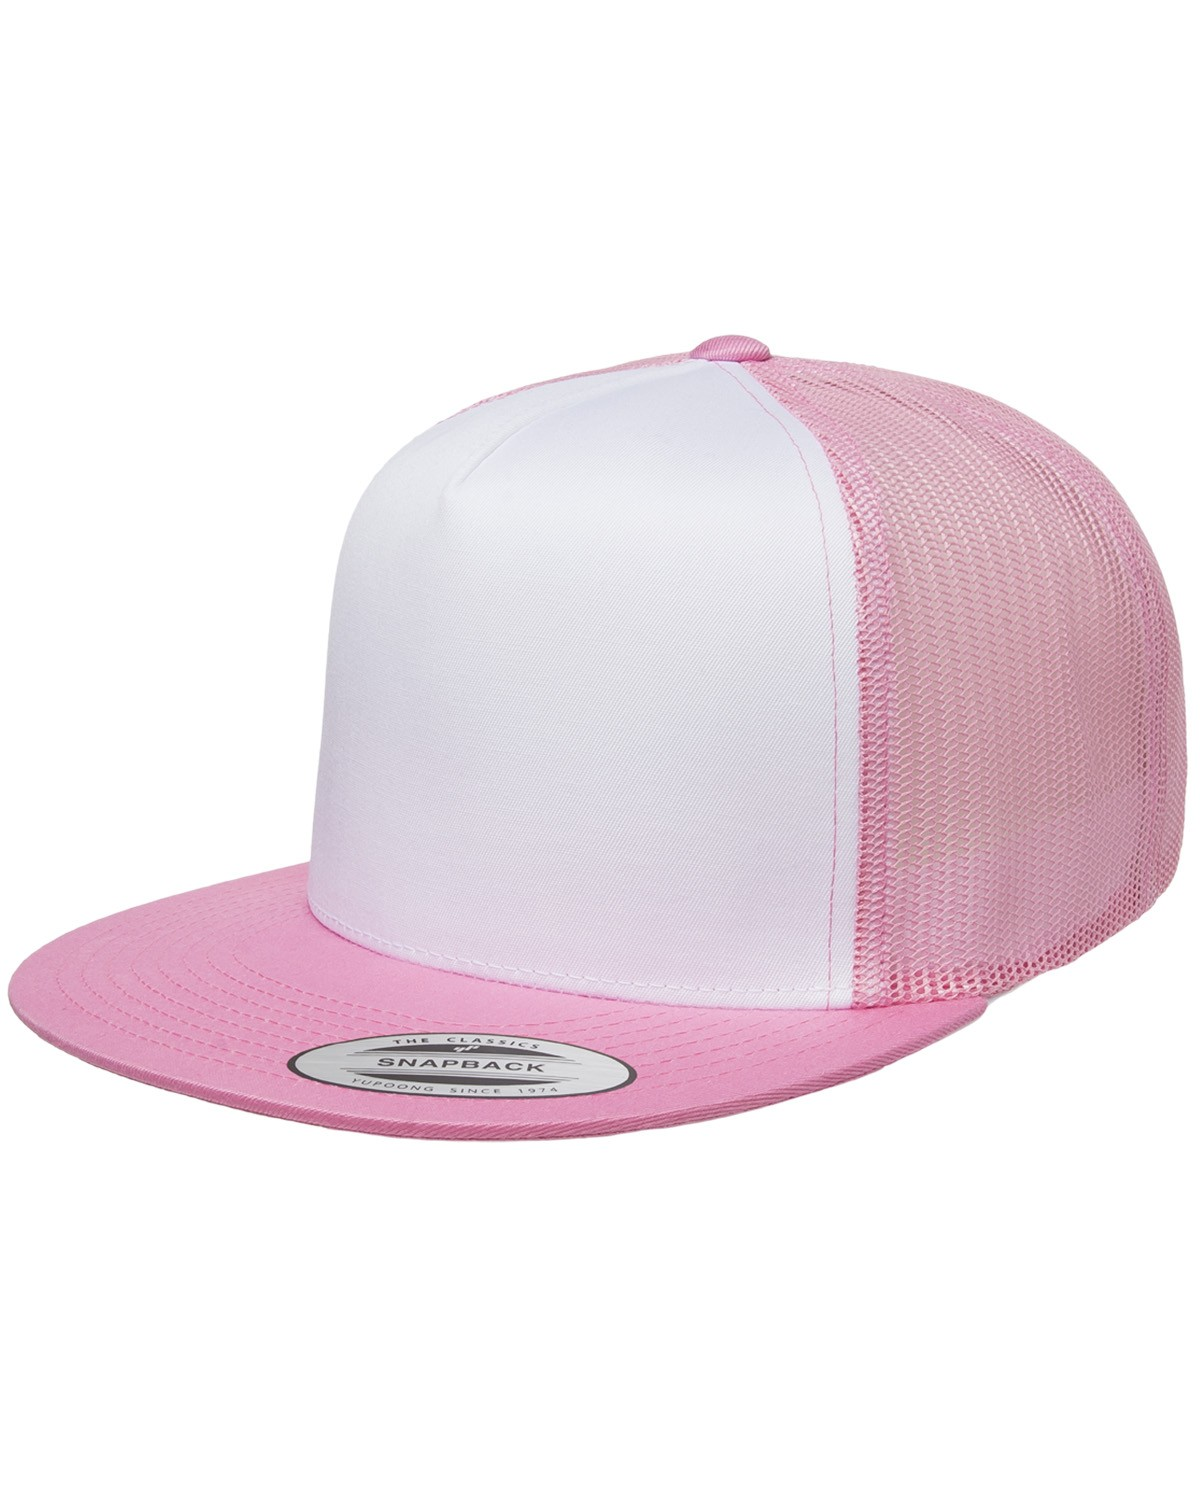 6006W Yupoong PINK/WHT/PINK